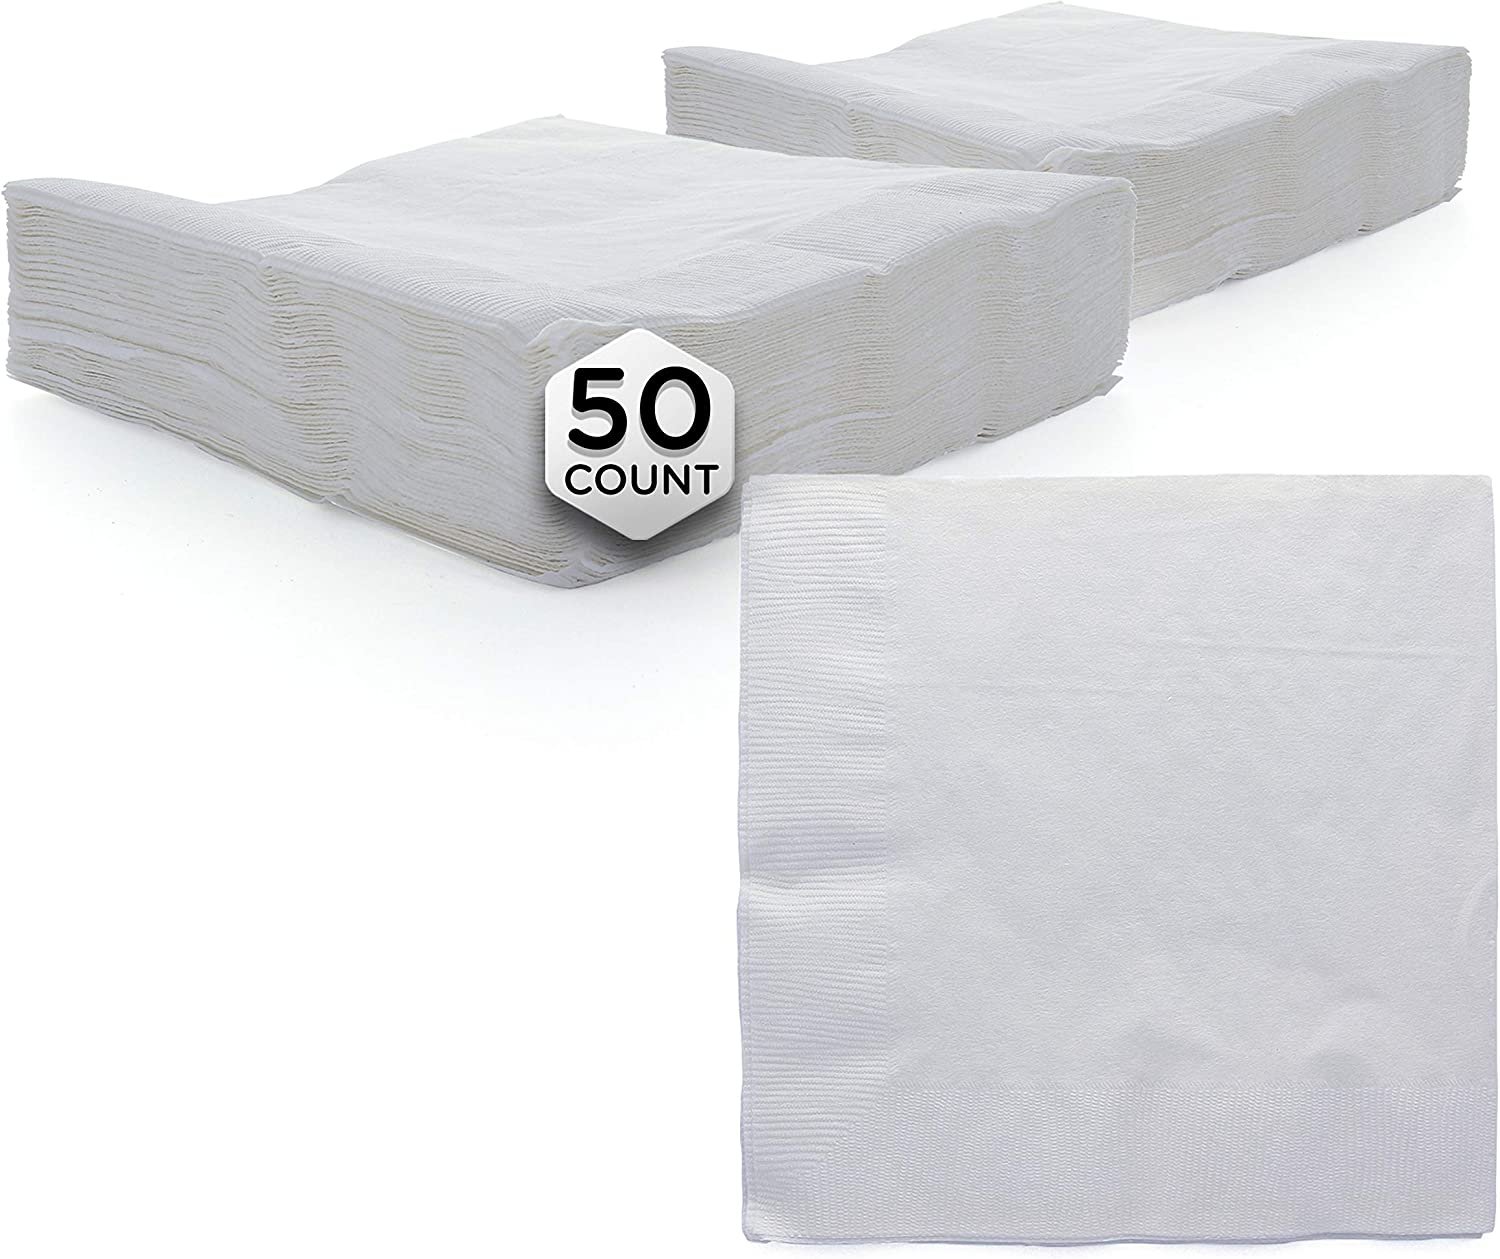 "Amcrate Big Party Pack 50 Count White Dinner Napkins Tableware- Ideal for Wedding, Party, Birthday, Dinner, Lunch, Cocktails. (7"" x 7"")"